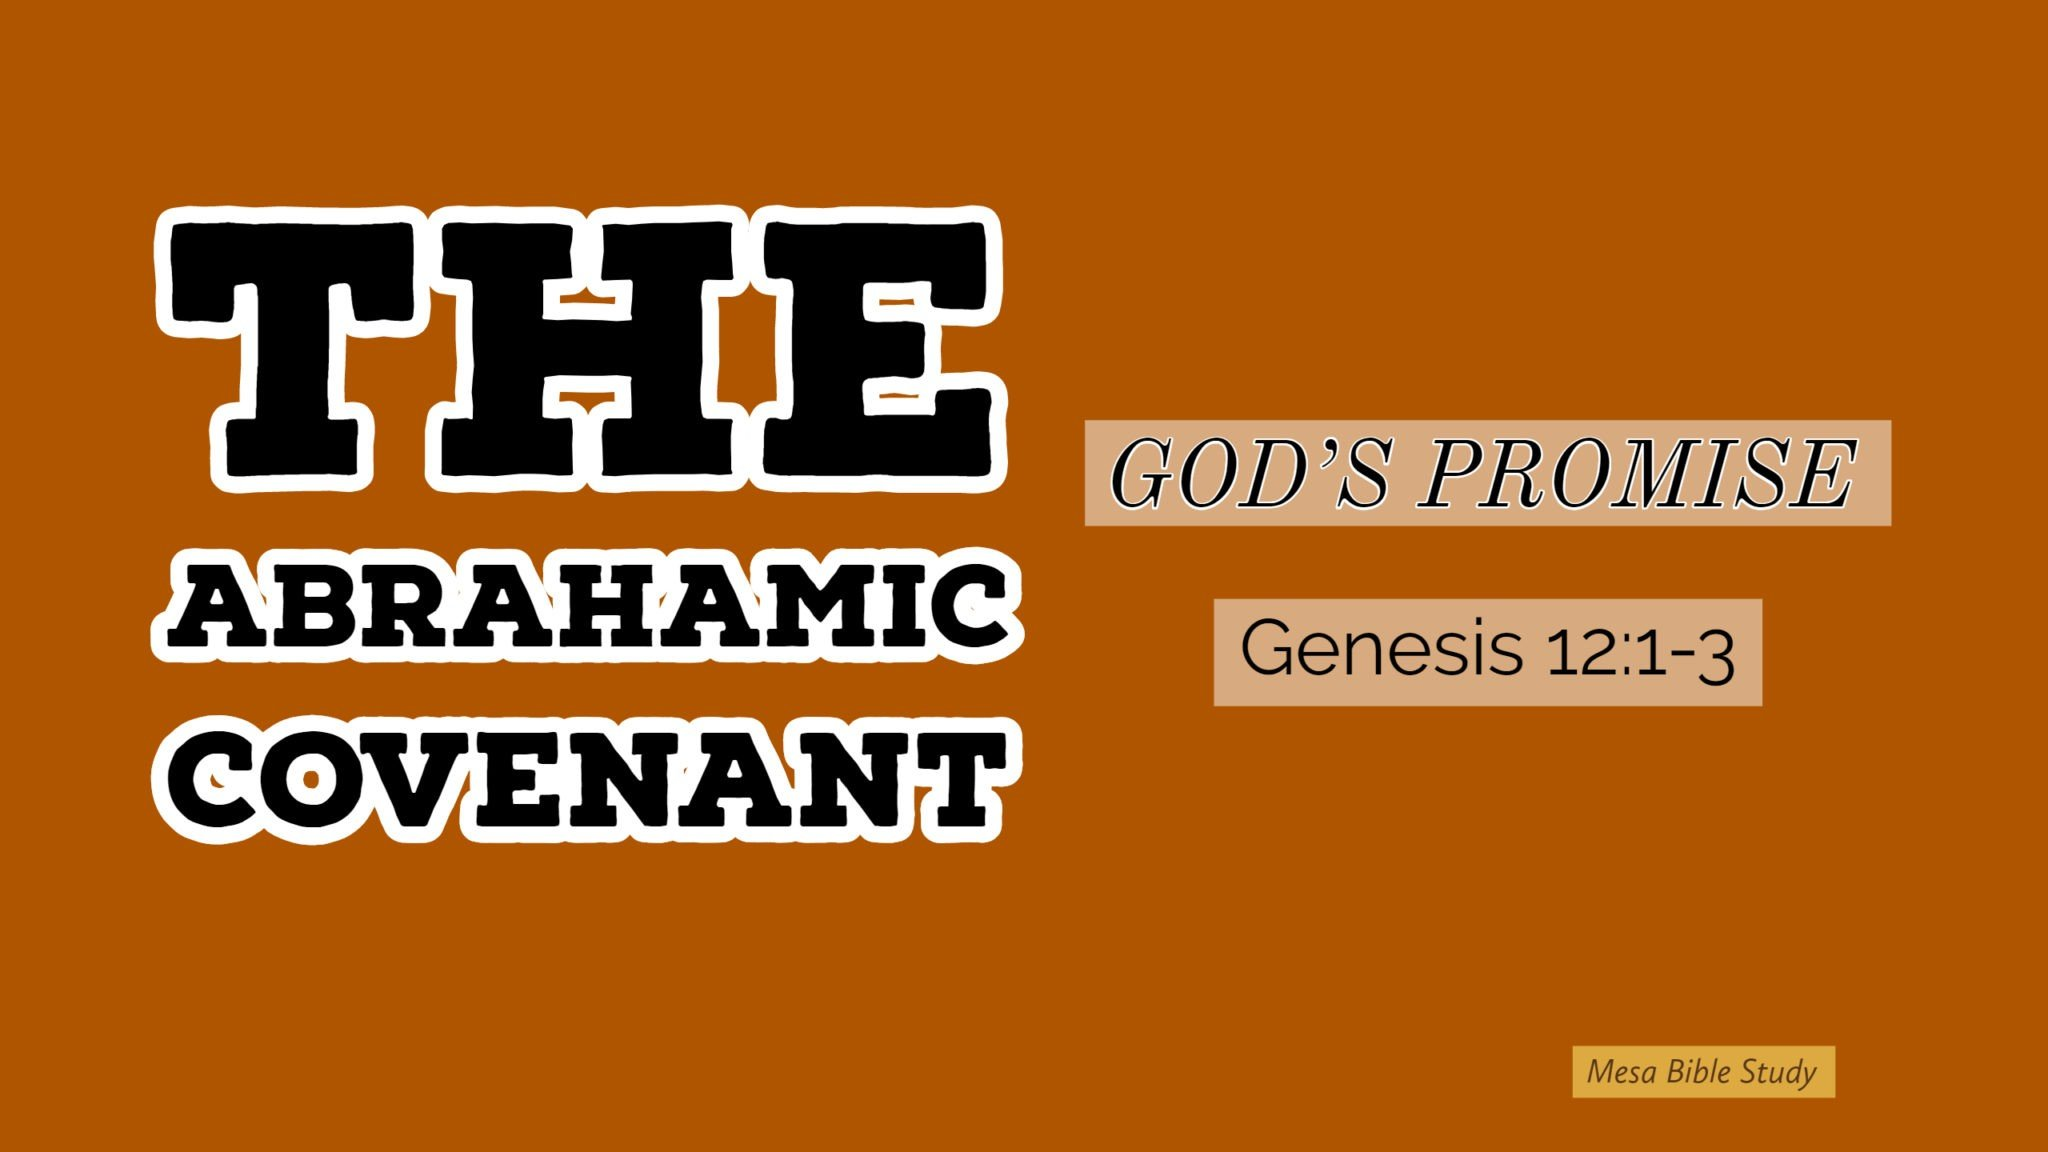 The Abrahamic Covenant is a key to understanding the Bible